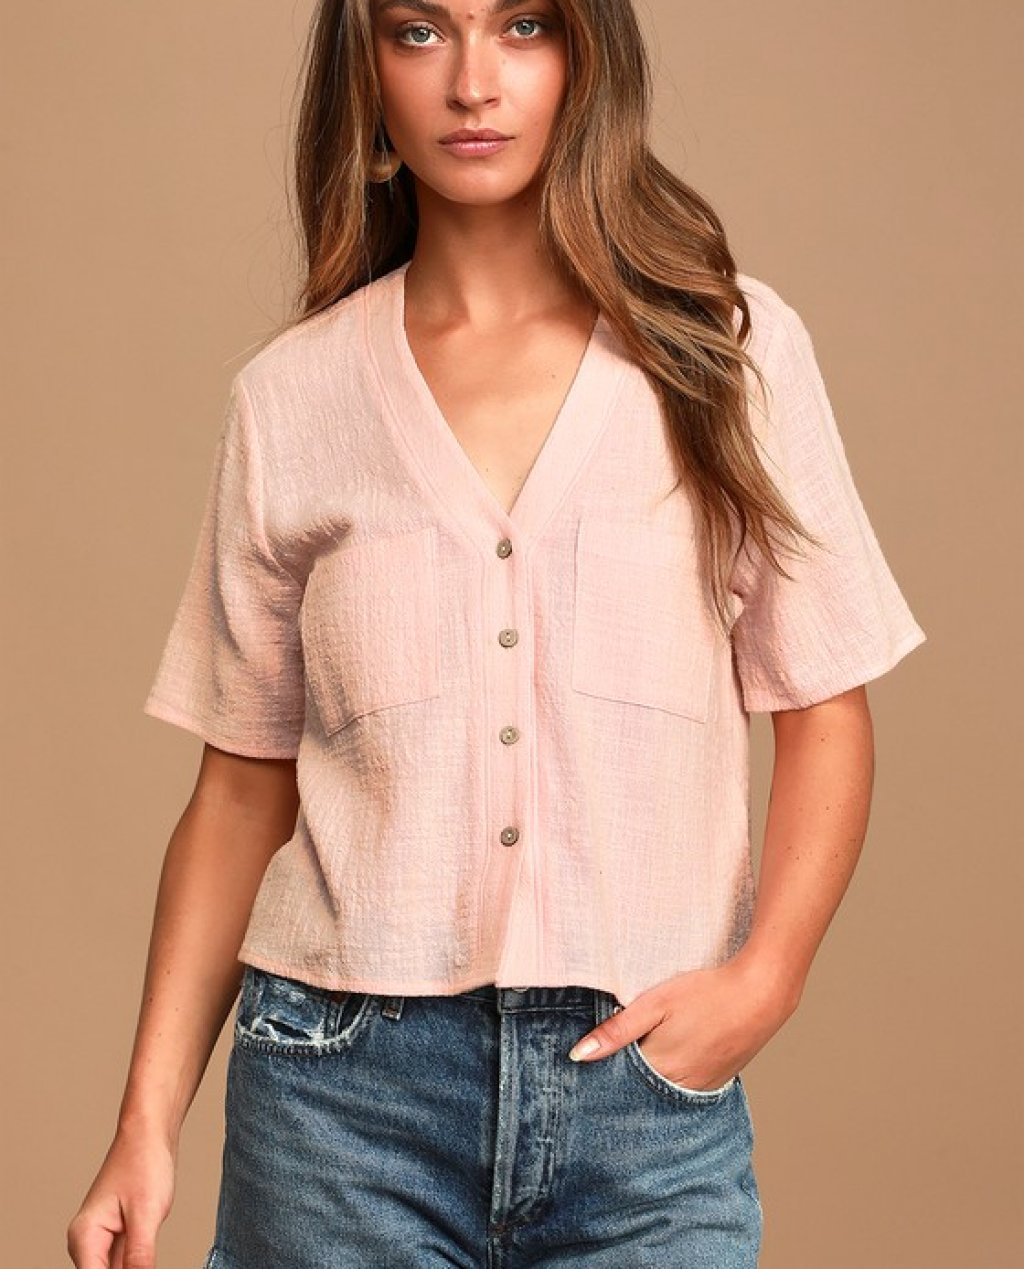 Lift My Spirits Light Pink Button-Up Crop Top